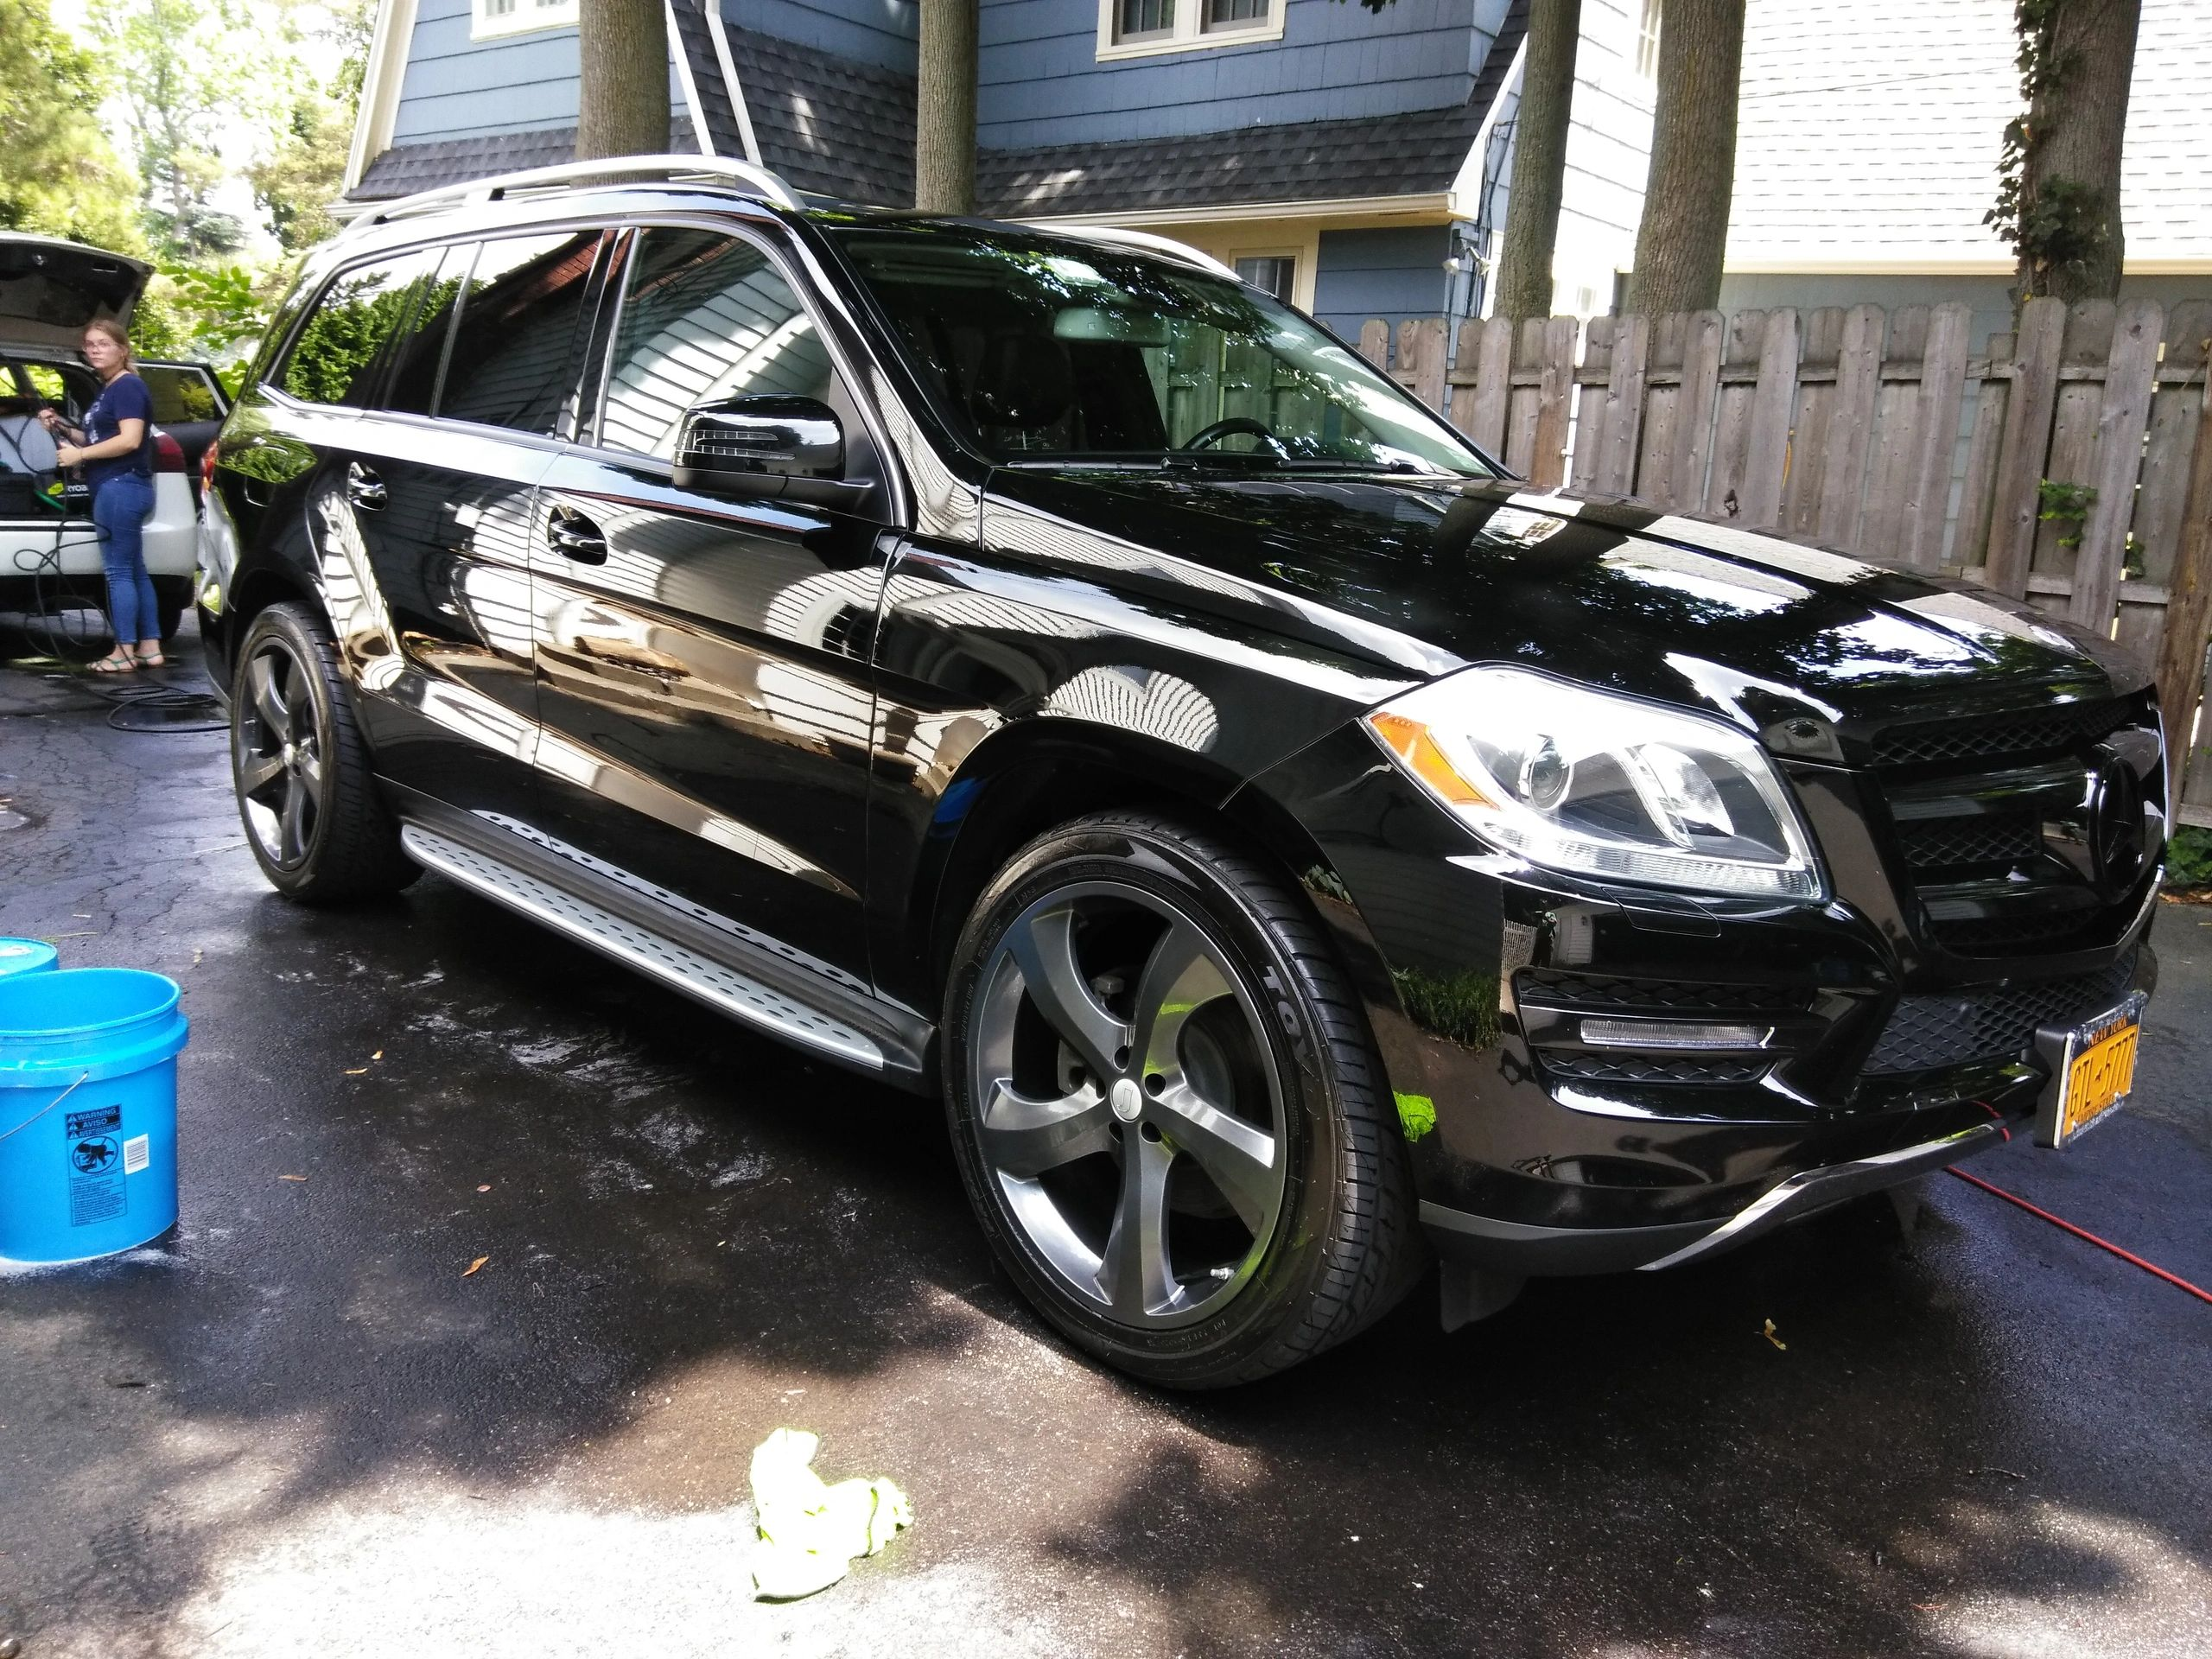 Campbelldetailing auto detailing in rochester car detailing campbelldetailing for Interior car cleaning rochester ny